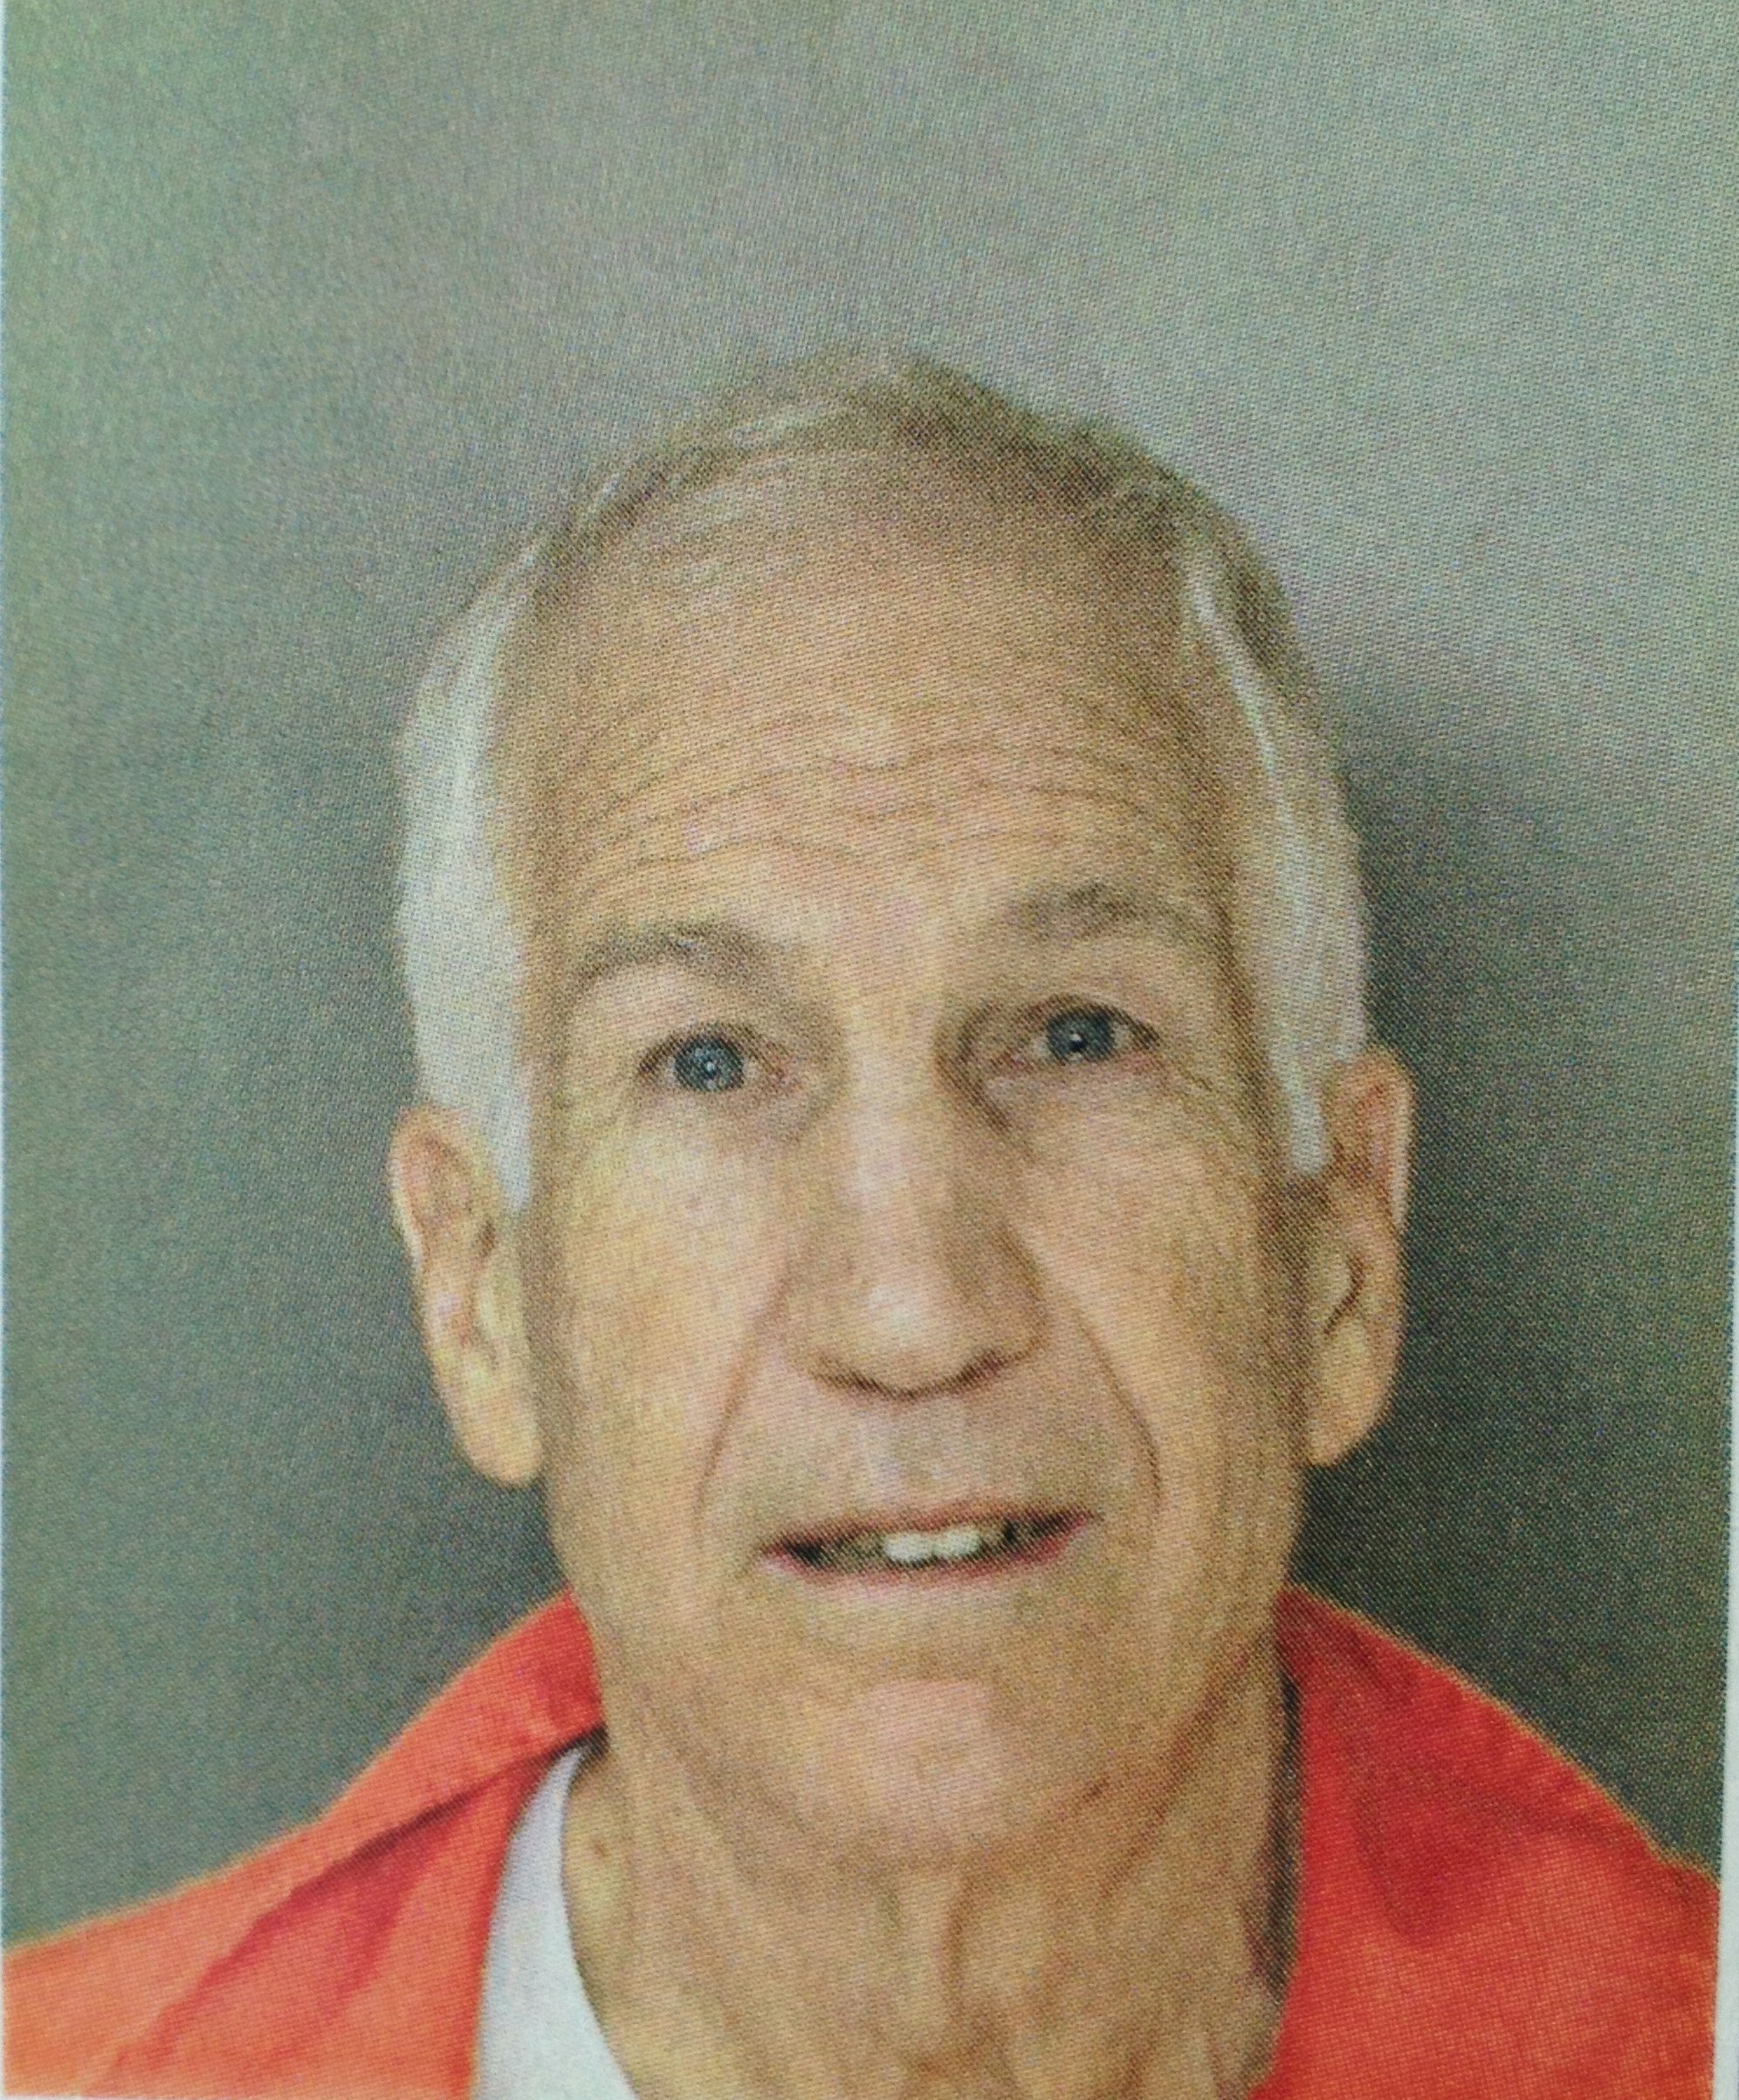 Jerry Sandusky is expected to be resentenced on Friday